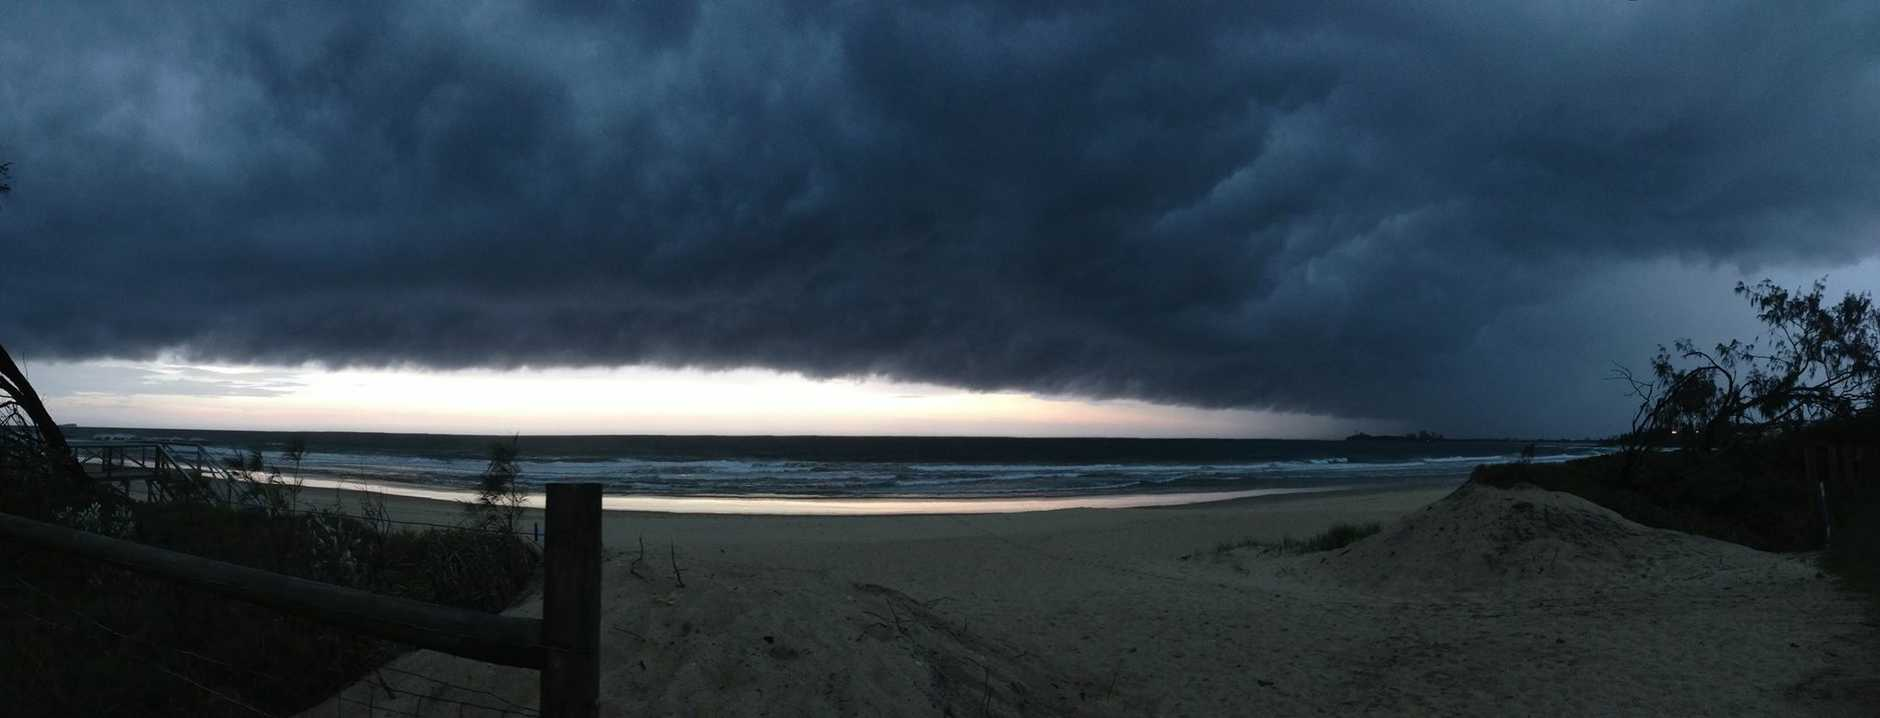 Mother Nature is angry. Alex Beach. Quick pano on phone before it started pouring